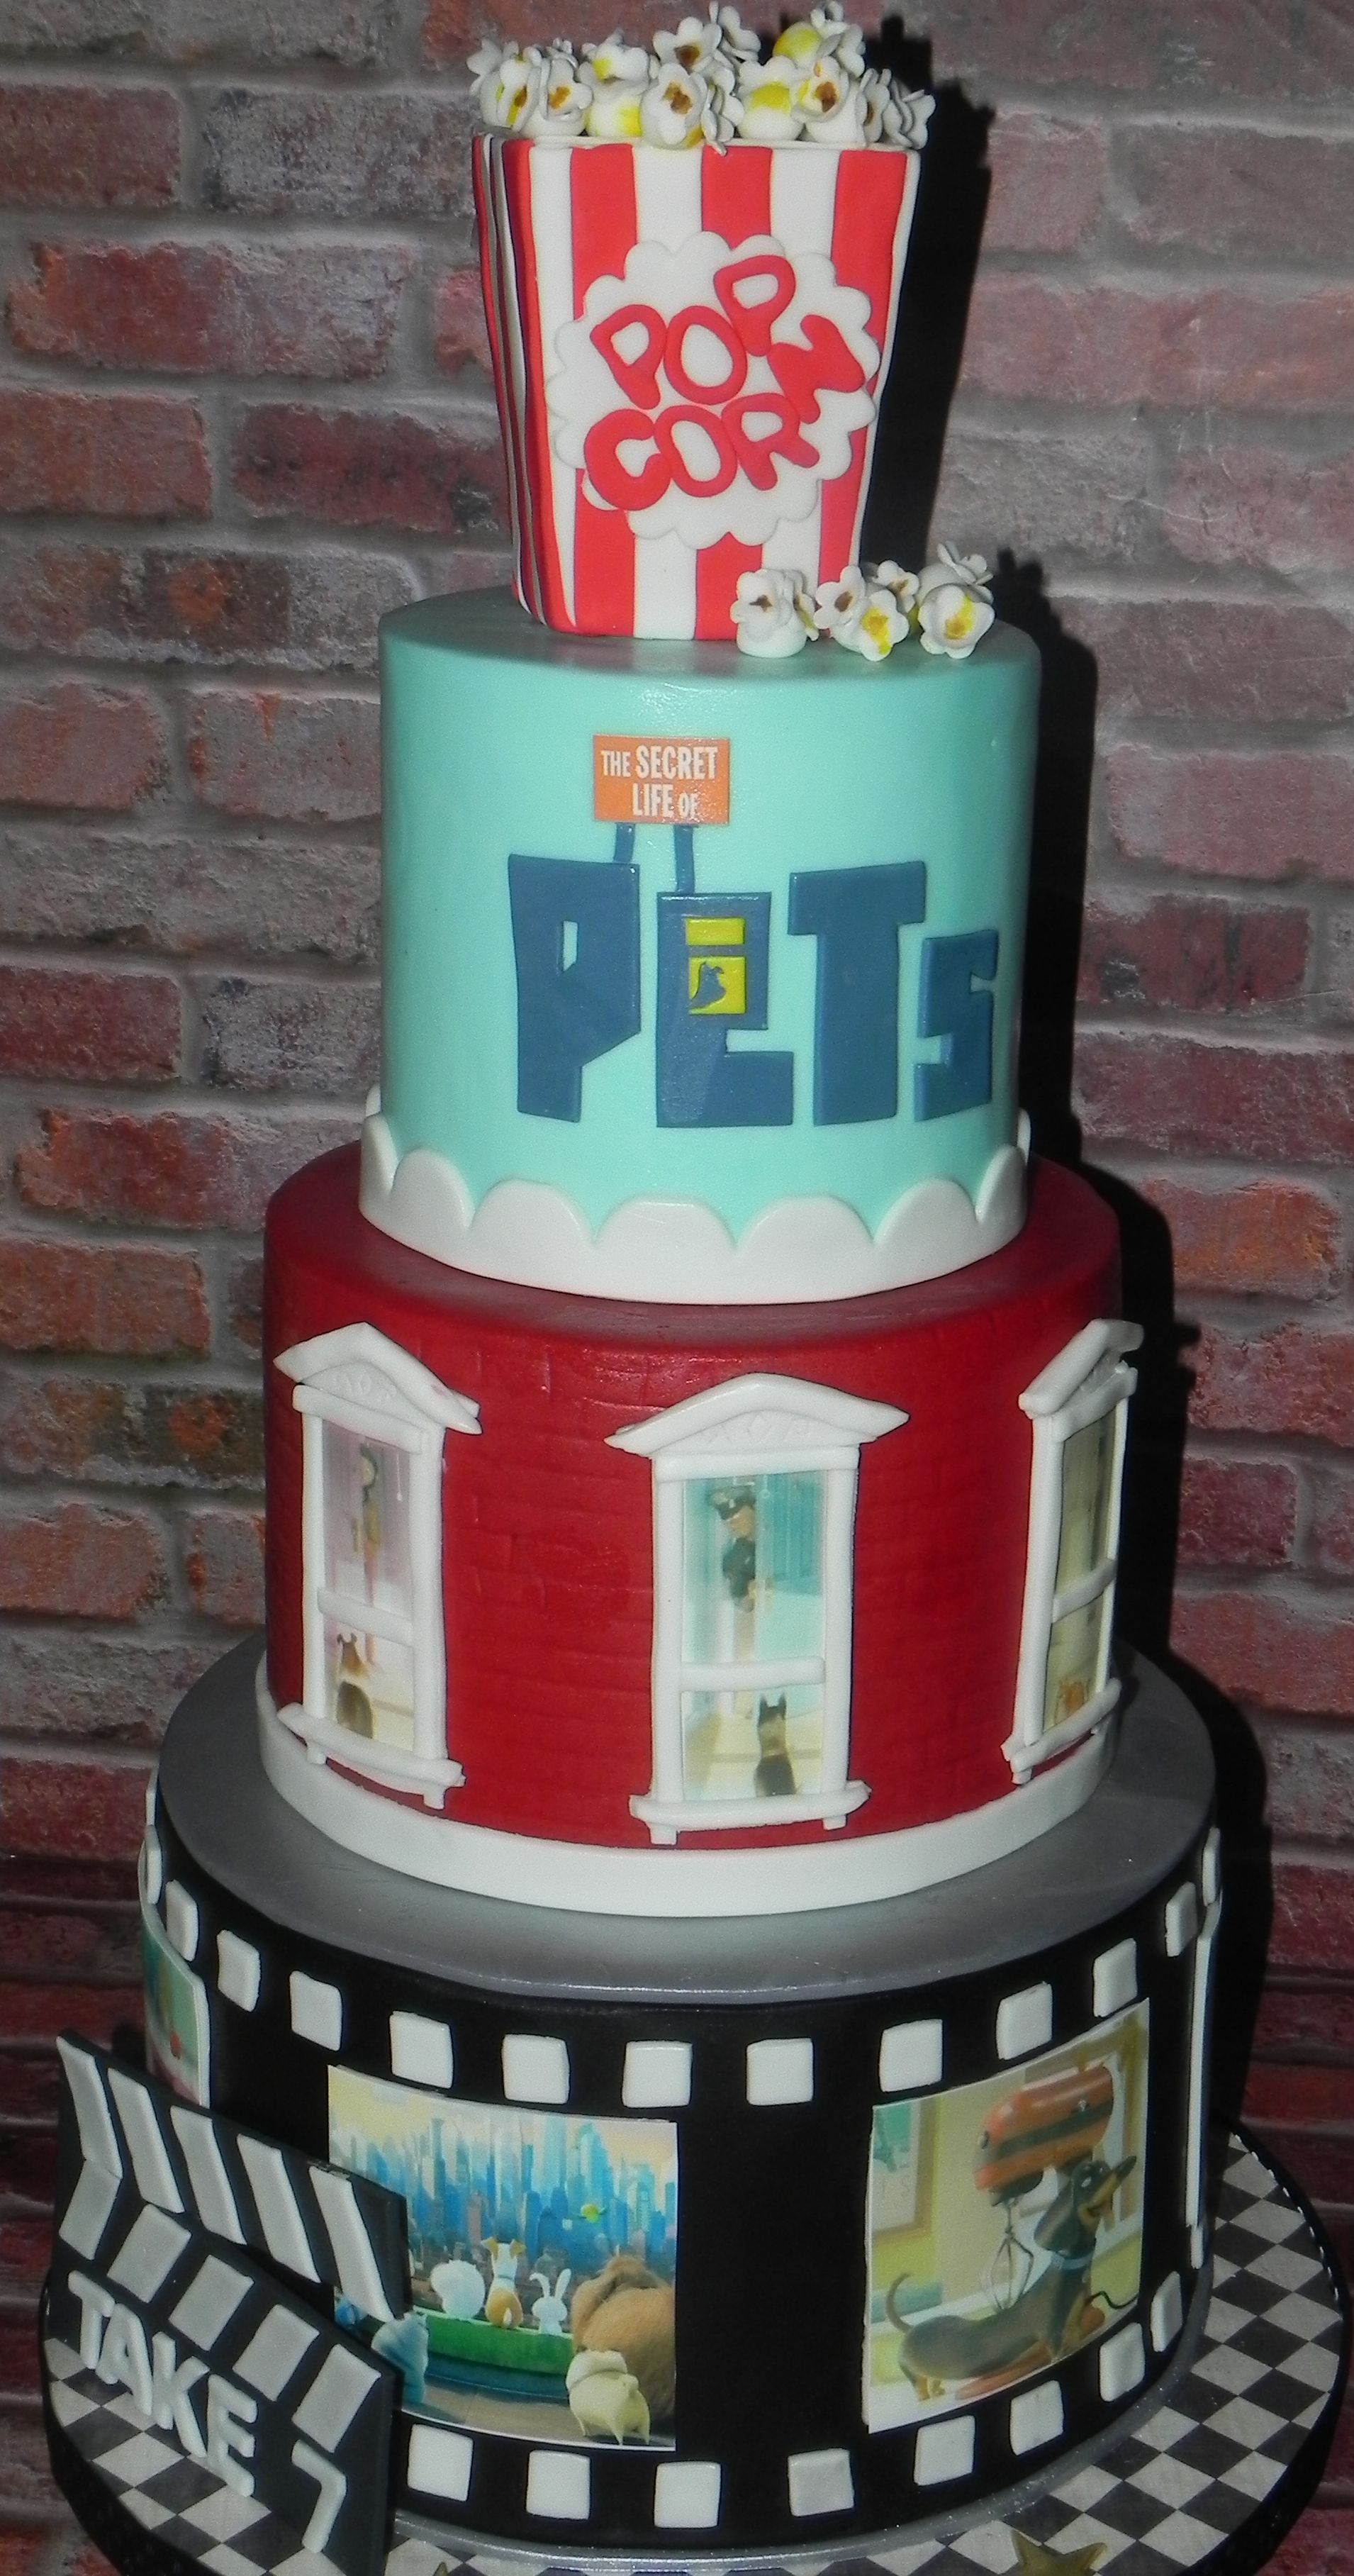 Secret Life Of Pets Cake With Handcrafted Popcorn Topper And Handpainted Fondant Popcorn Birthday Cake Kids Party Cakes Birthday Party Cake